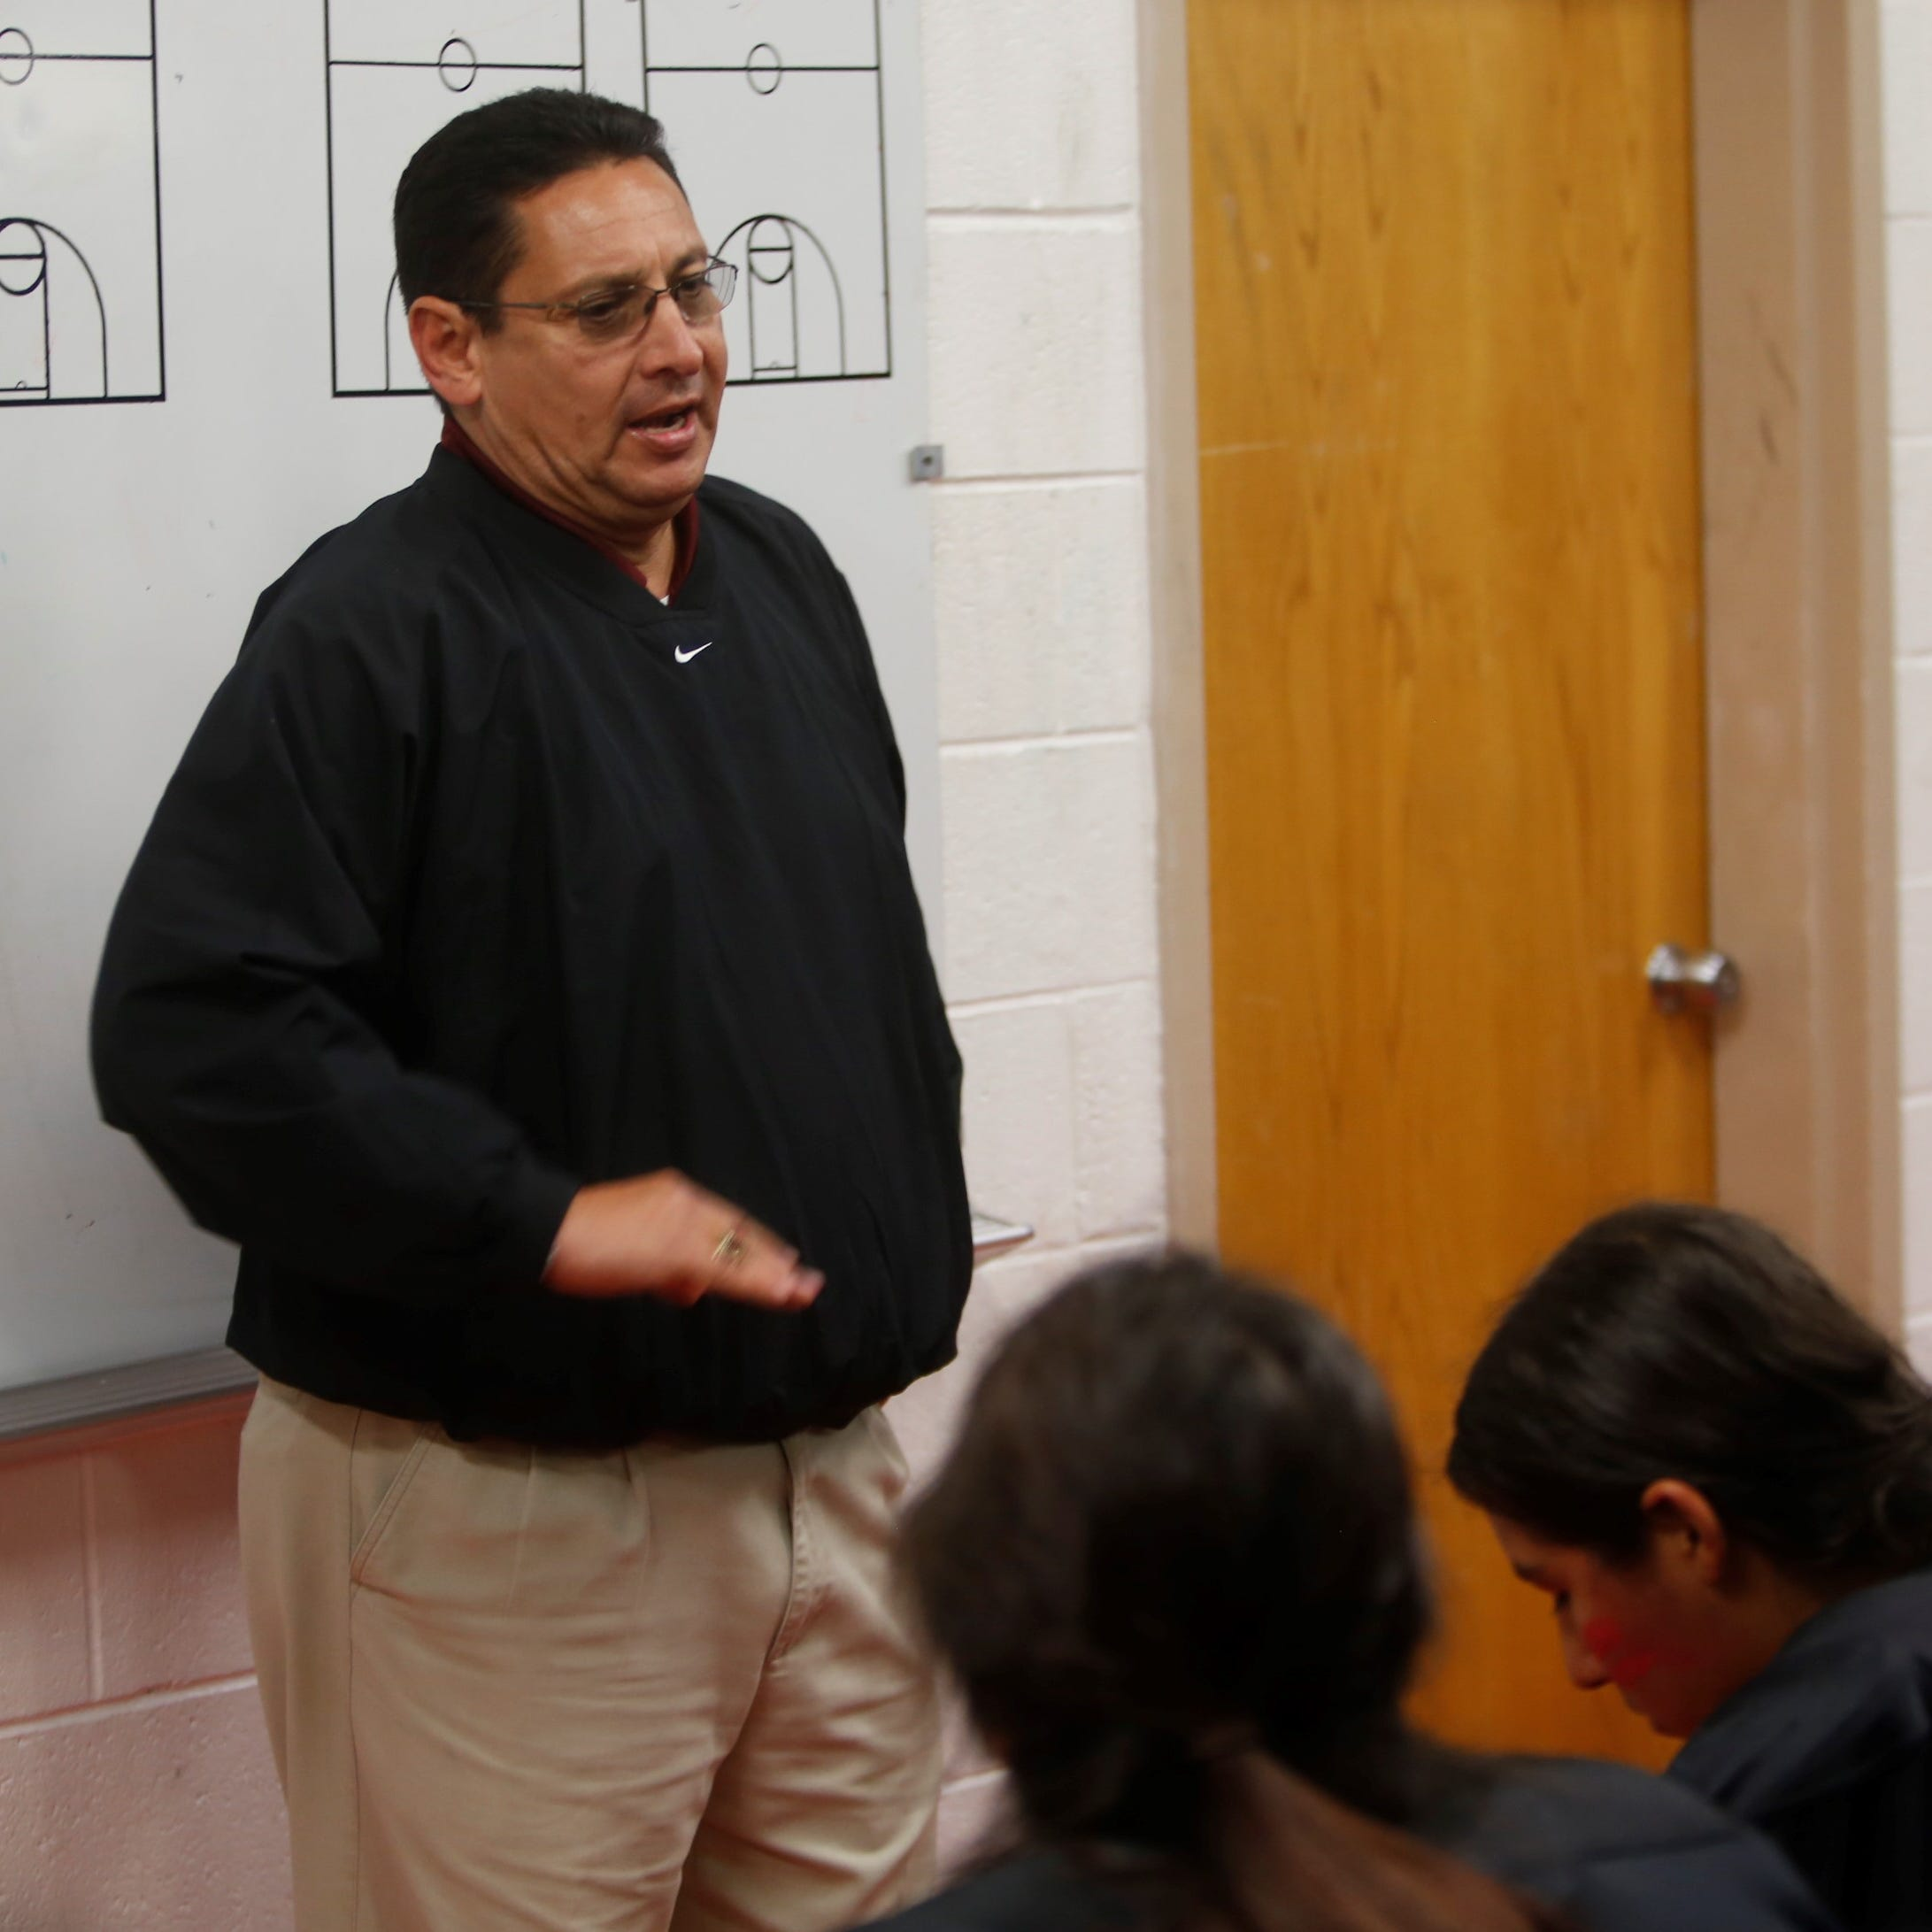 Shiprock football coach out after one season